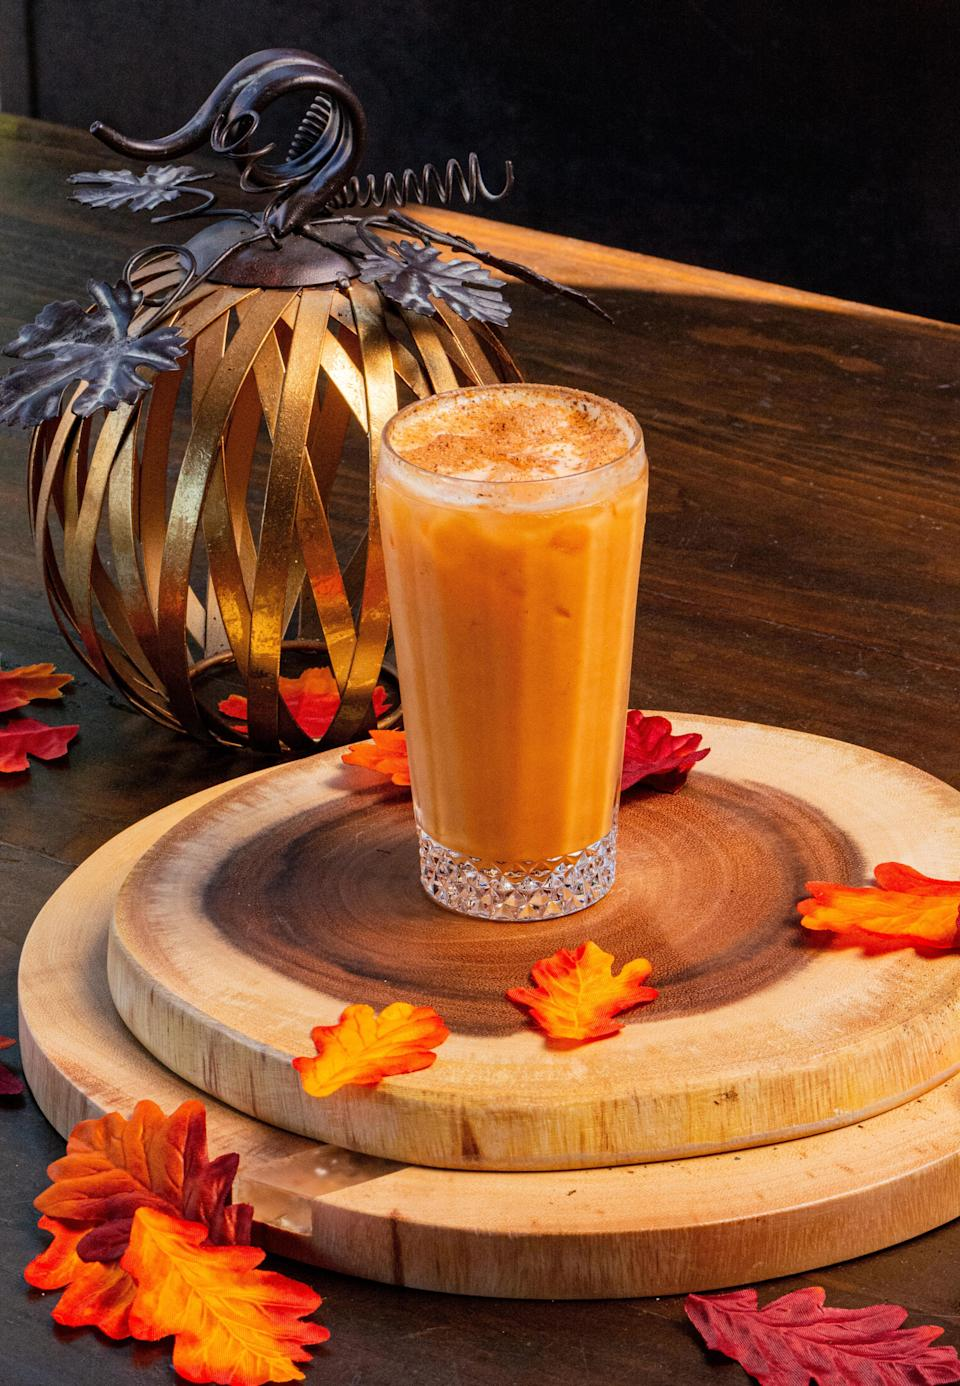 "<p>This cocktail recipe merges flavors of the tropics in the fall. Beachy flavors like coconut and pineapple are combined with pumpkin spice, rum and whiskey to create a cocktail you can serve alongside <a href=""https://www.thedailymeal.com/cook/101-best-thanksgiving-recipes-gallery?referrer=yahoo&category=beauty_food&include_utm=1&utm_medium=referral&utm_source=yahoo&utm_campaign=feed"" rel=""nofollow noopener"" target=""_blank"" data-ylk=""slk:our 101 best Thanksgiving recipes"" class=""link rapid-noclick-resp"">our 101 best Thanksgiving recipes</a>.</p> <p><a href=""https://www.thedailymeal.com/recipe/pumpkin-paradise-recipe?referrer=yahoo&category=beauty_food&include_utm=1&utm_medium=referral&utm_source=yahoo&utm_campaign=feed"" rel=""nofollow noopener"" target=""_blank"" data-ylk=""slk:For the Pumpkin Paradise recipe, click here."" class=""link rapid-noclick-resp"">For the Pumpkin Paradise recipe, click here.</a></p>"